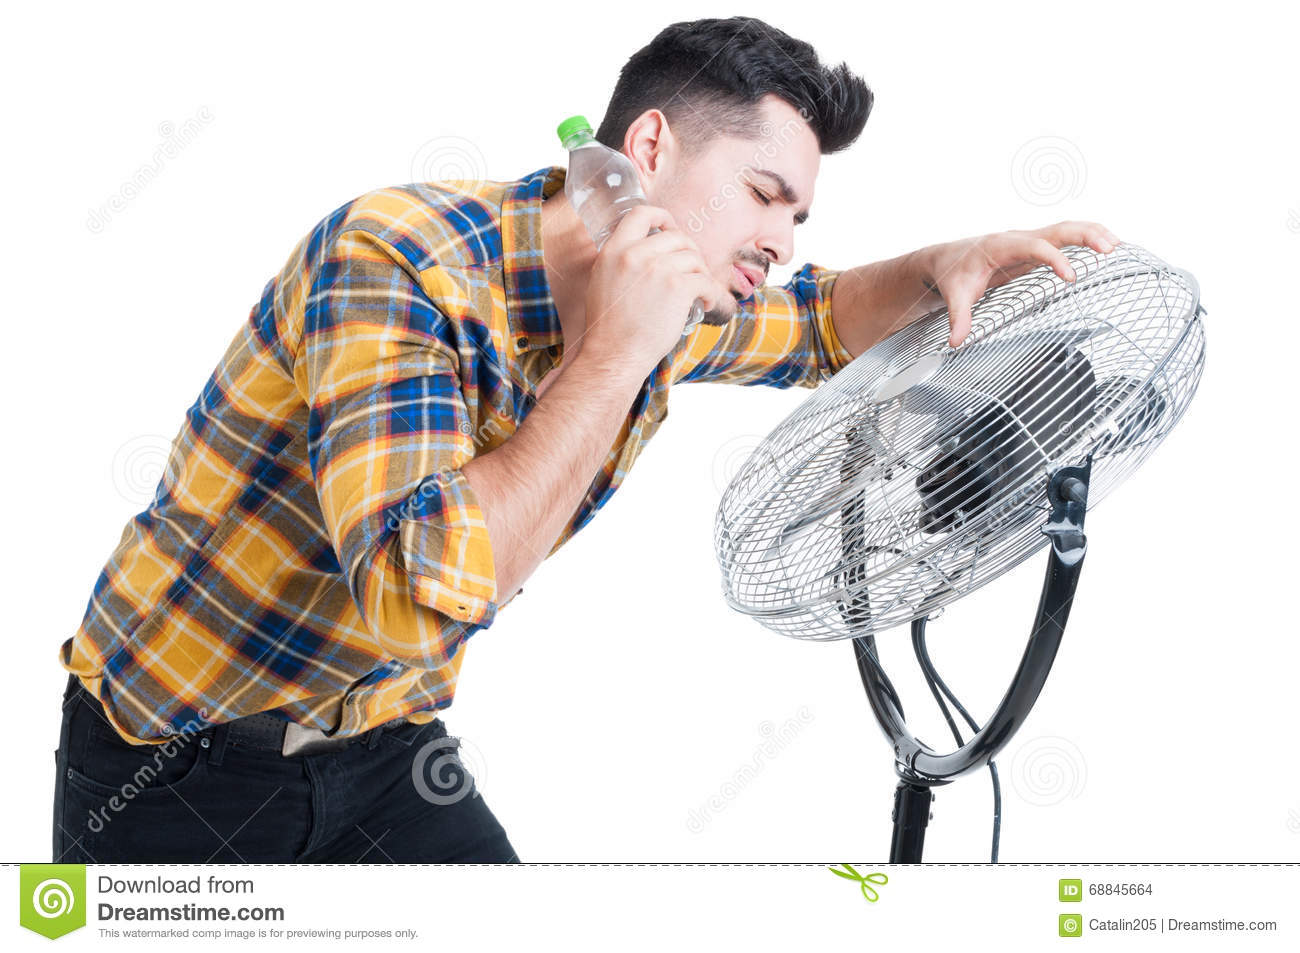 Cooling Off With Fan : Sweaty and thirsty man standing near fan cooling off